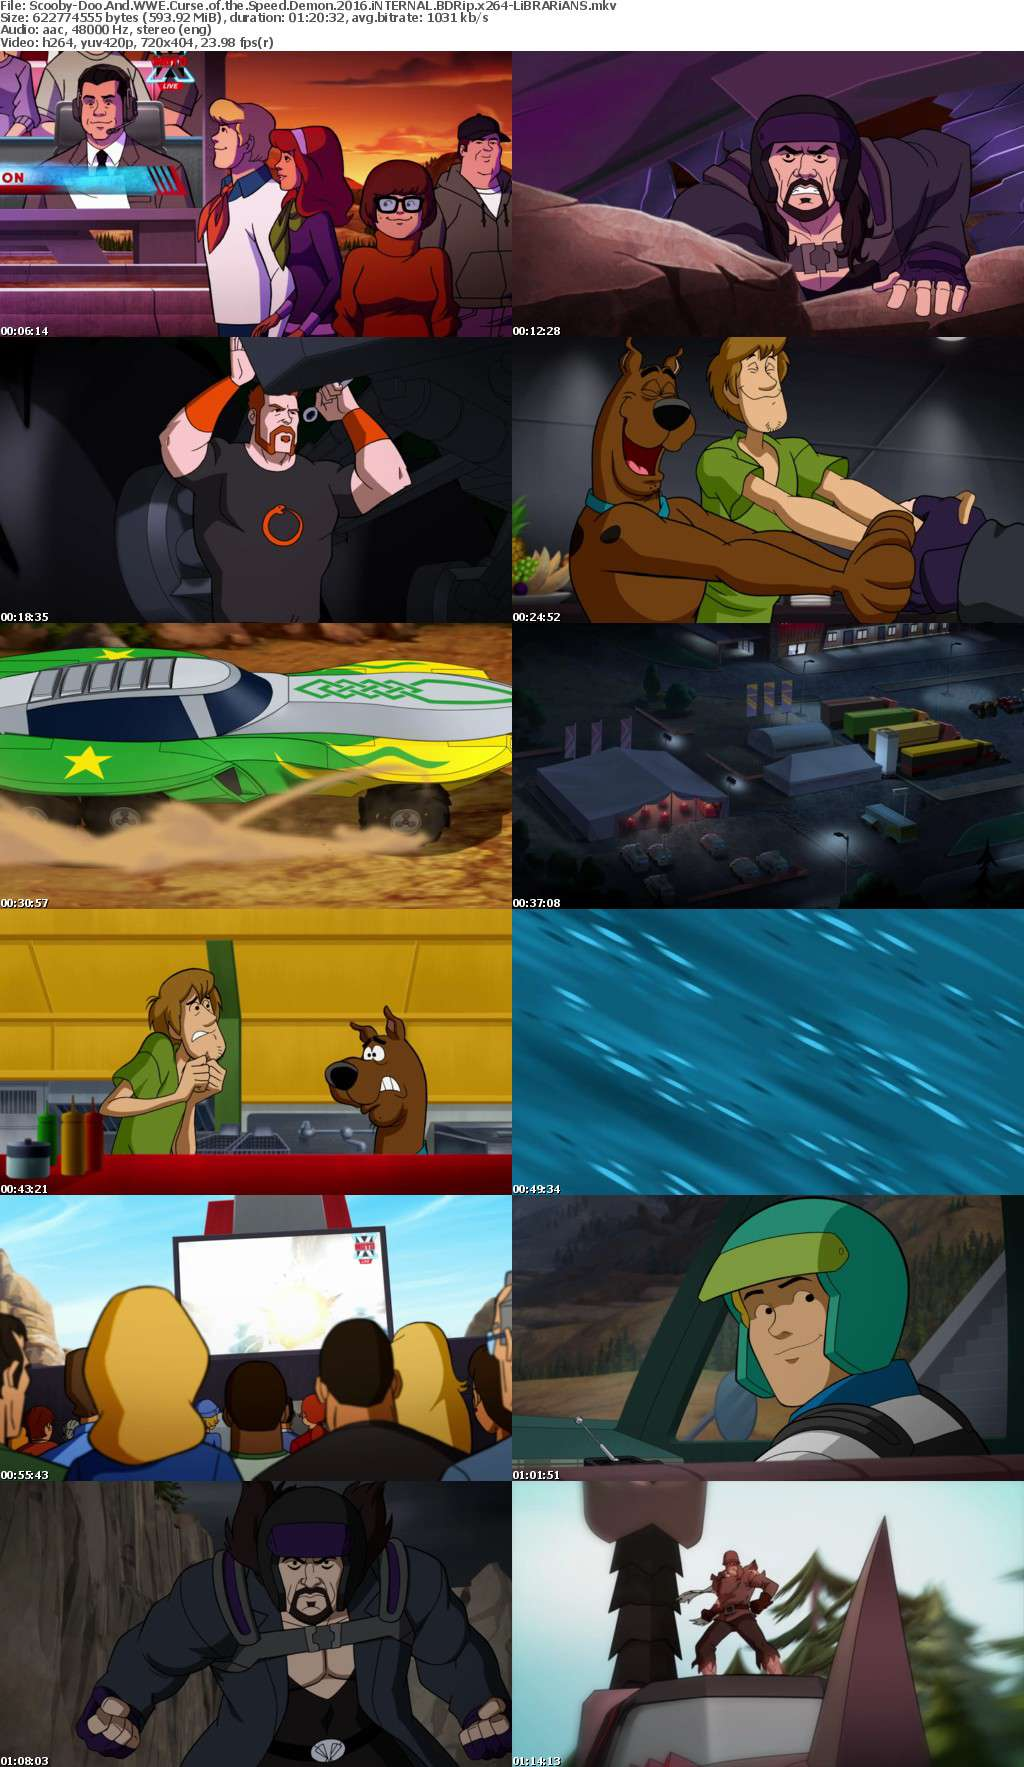 Scooby-Doo And WWE Curse of the Speed Demon 2016 iNTERNAL BDRip x264-LiBRARiANS